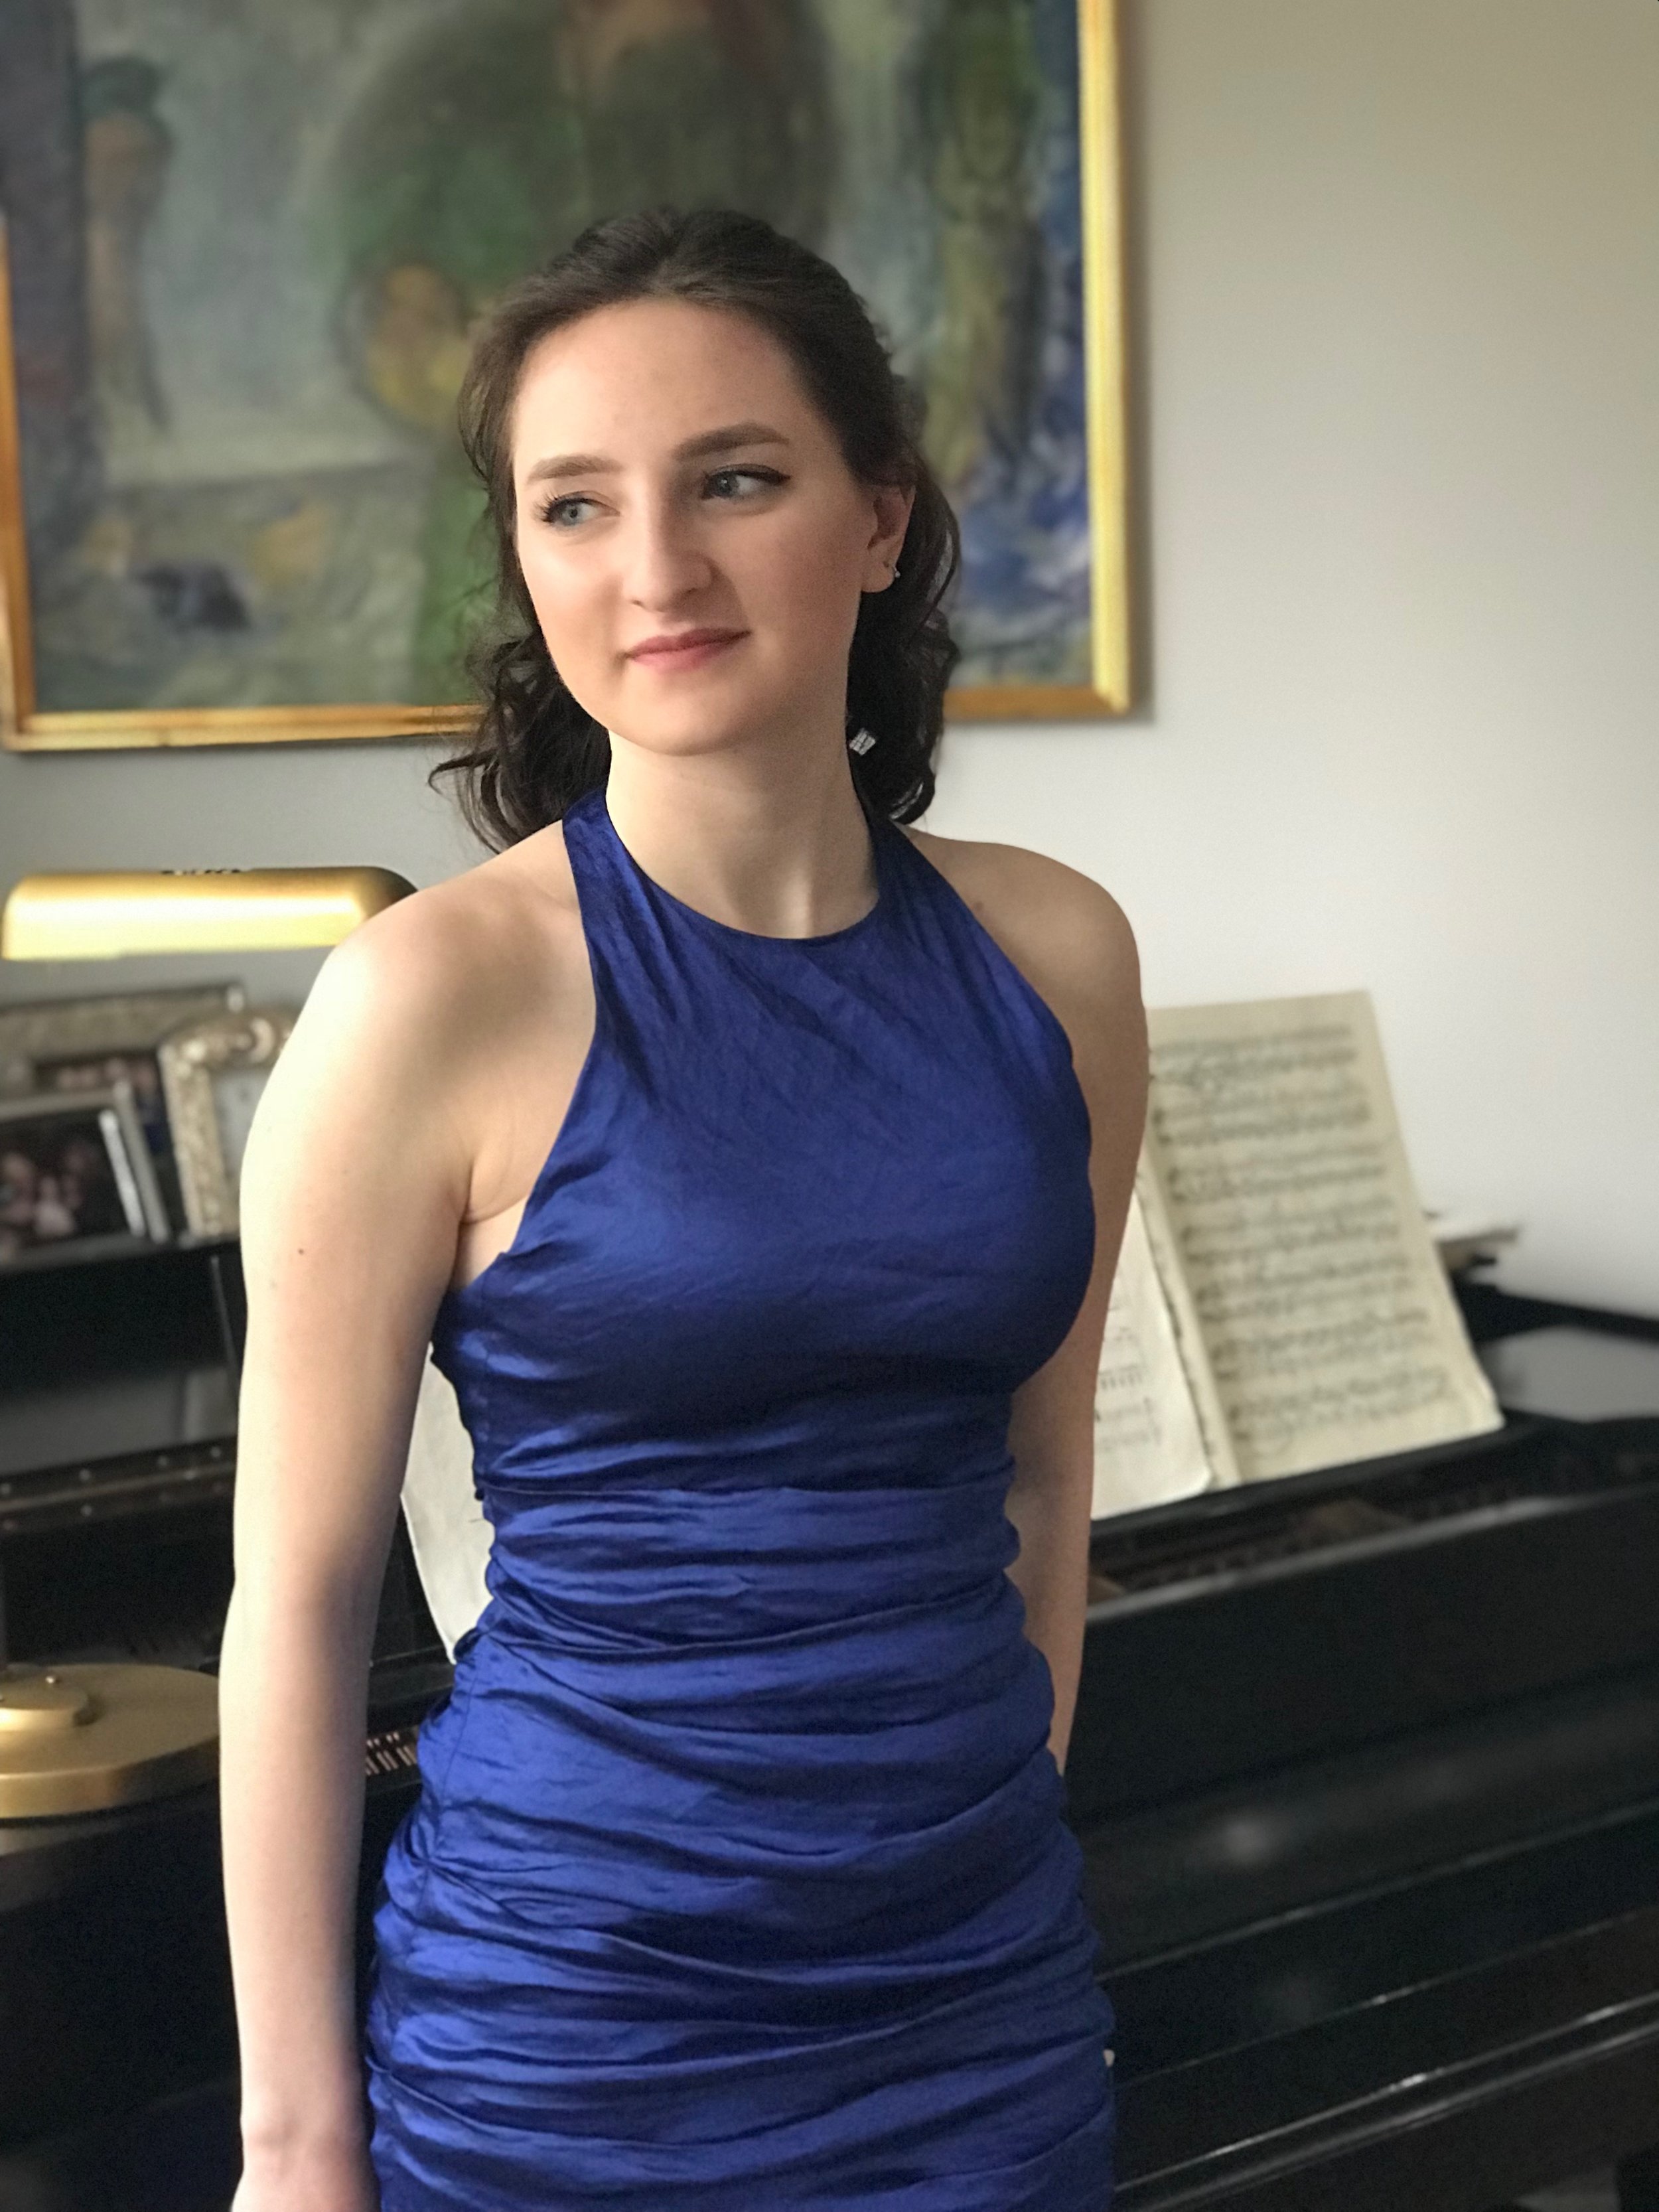 EMILIA POMA - Emilia is a 19 y. o. who attended Juilliard Pre-College for Piano and Opera and LaGuardia High School for the Performing Arts.She is an accomplished Pianist, Vocalist, and Actress. She has performed in concert at Juilliard's Paul Hall, the Royal Opera House, and at Ulriksdals Palace Theater. Emilia was in the Stockholm City Theater's Tribadernas Natt by P.O. Enqvist- the story of August Strindberg and Sofie Von Essen. In 2017/18 Emilia gained her first International acting credits as Zoe Tyler in the Swedish television crime thriller series Modus with Ms. Kim Cattrall and Mr. Greg Wise. Emilia plans to pursue further studies in Music - Opera, and the Dramatic Arts.